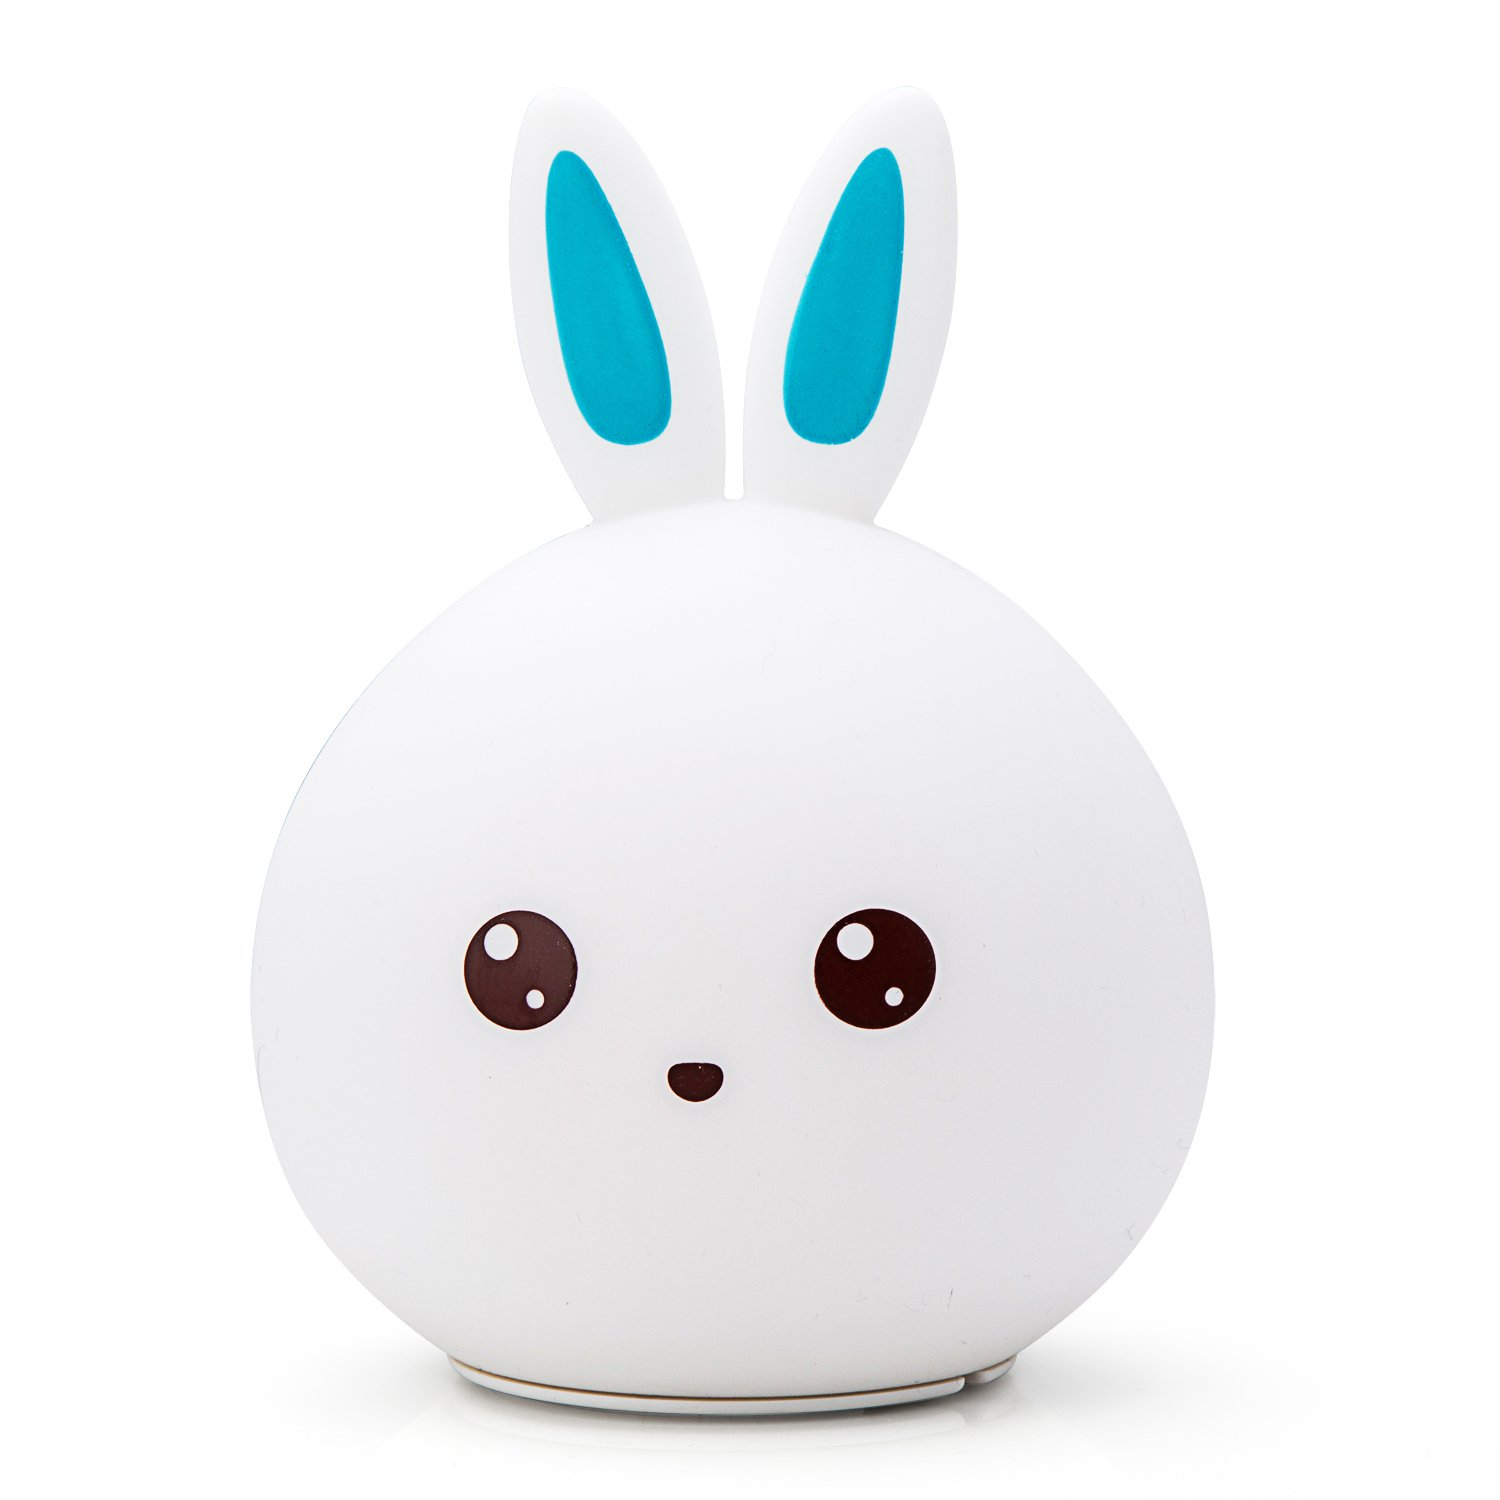 Goline Baby Night Light, Cute Bunny Led Night Light for Kids, Multicor Rabbit Nursery Lamp, Soft Silicone Night Light, Tap Night Lamp, Toddler Toys for Boys Age 3, Gifts for 7 Year Old Boy.(NL011-BE)